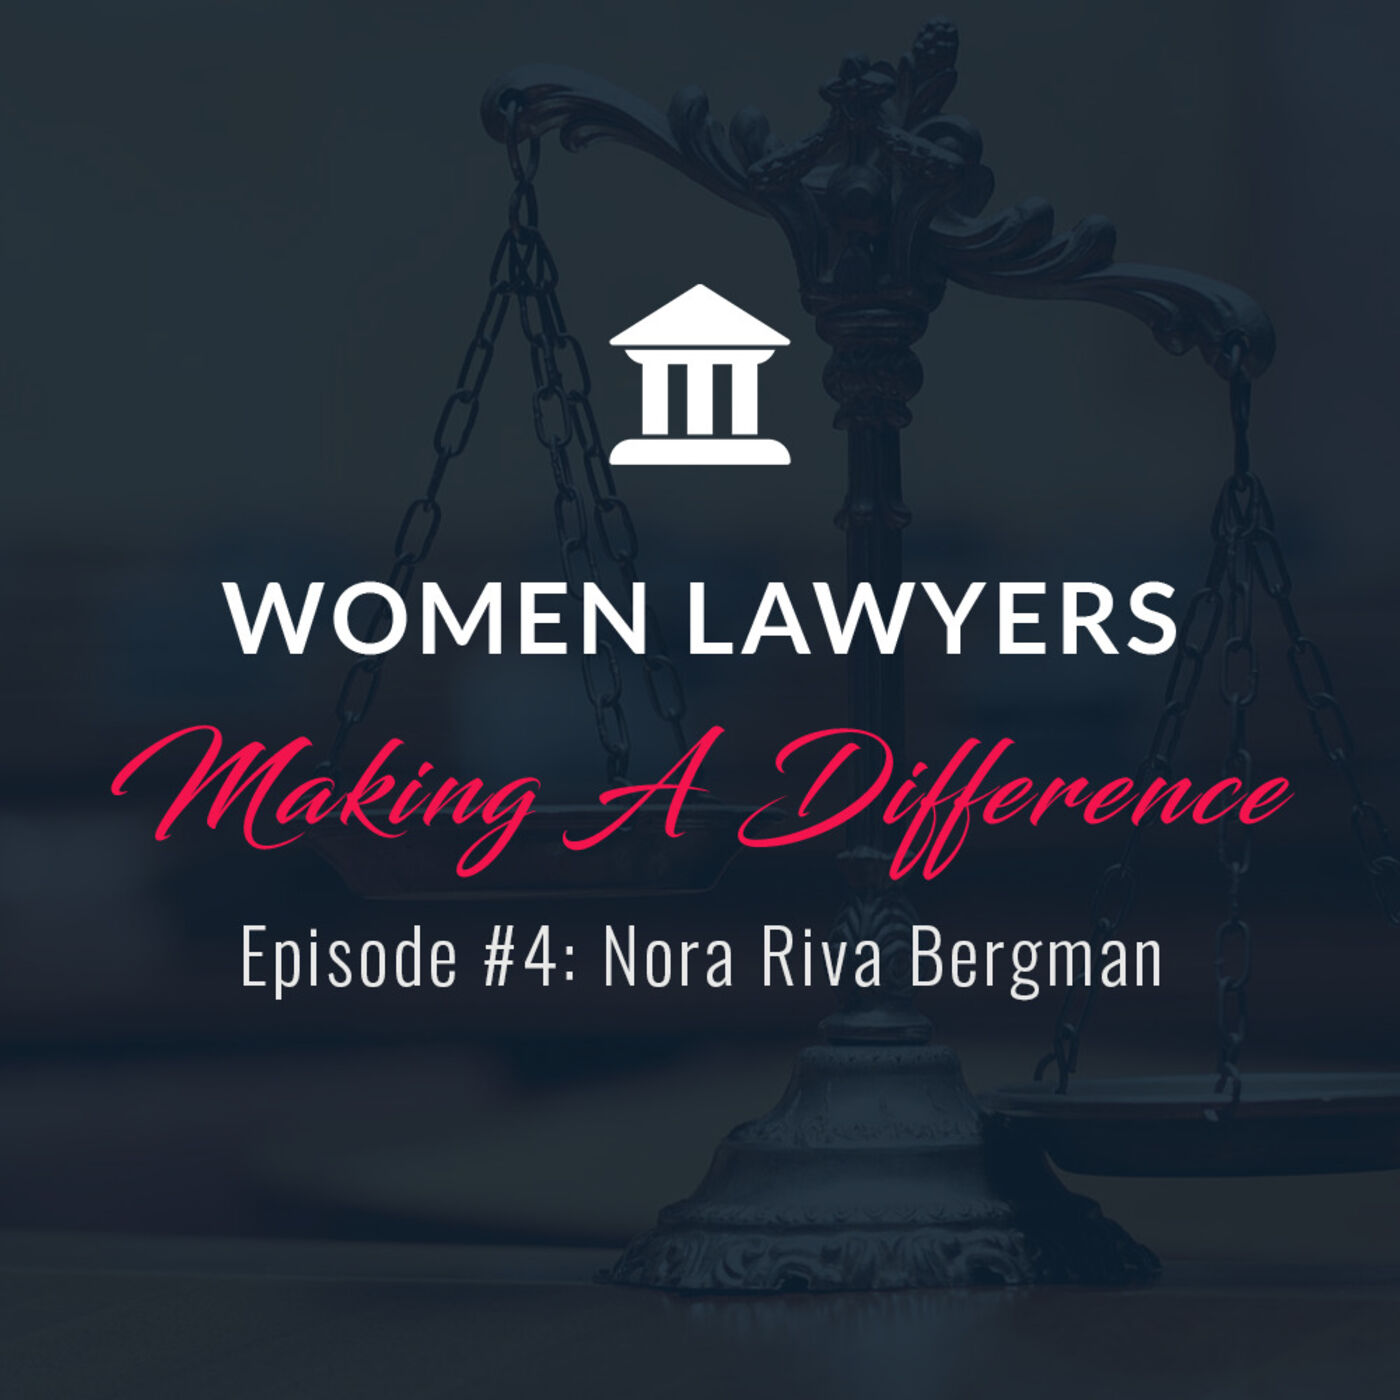 Women Lawyers Making A Difference: Interview with Nora Riva Bergman